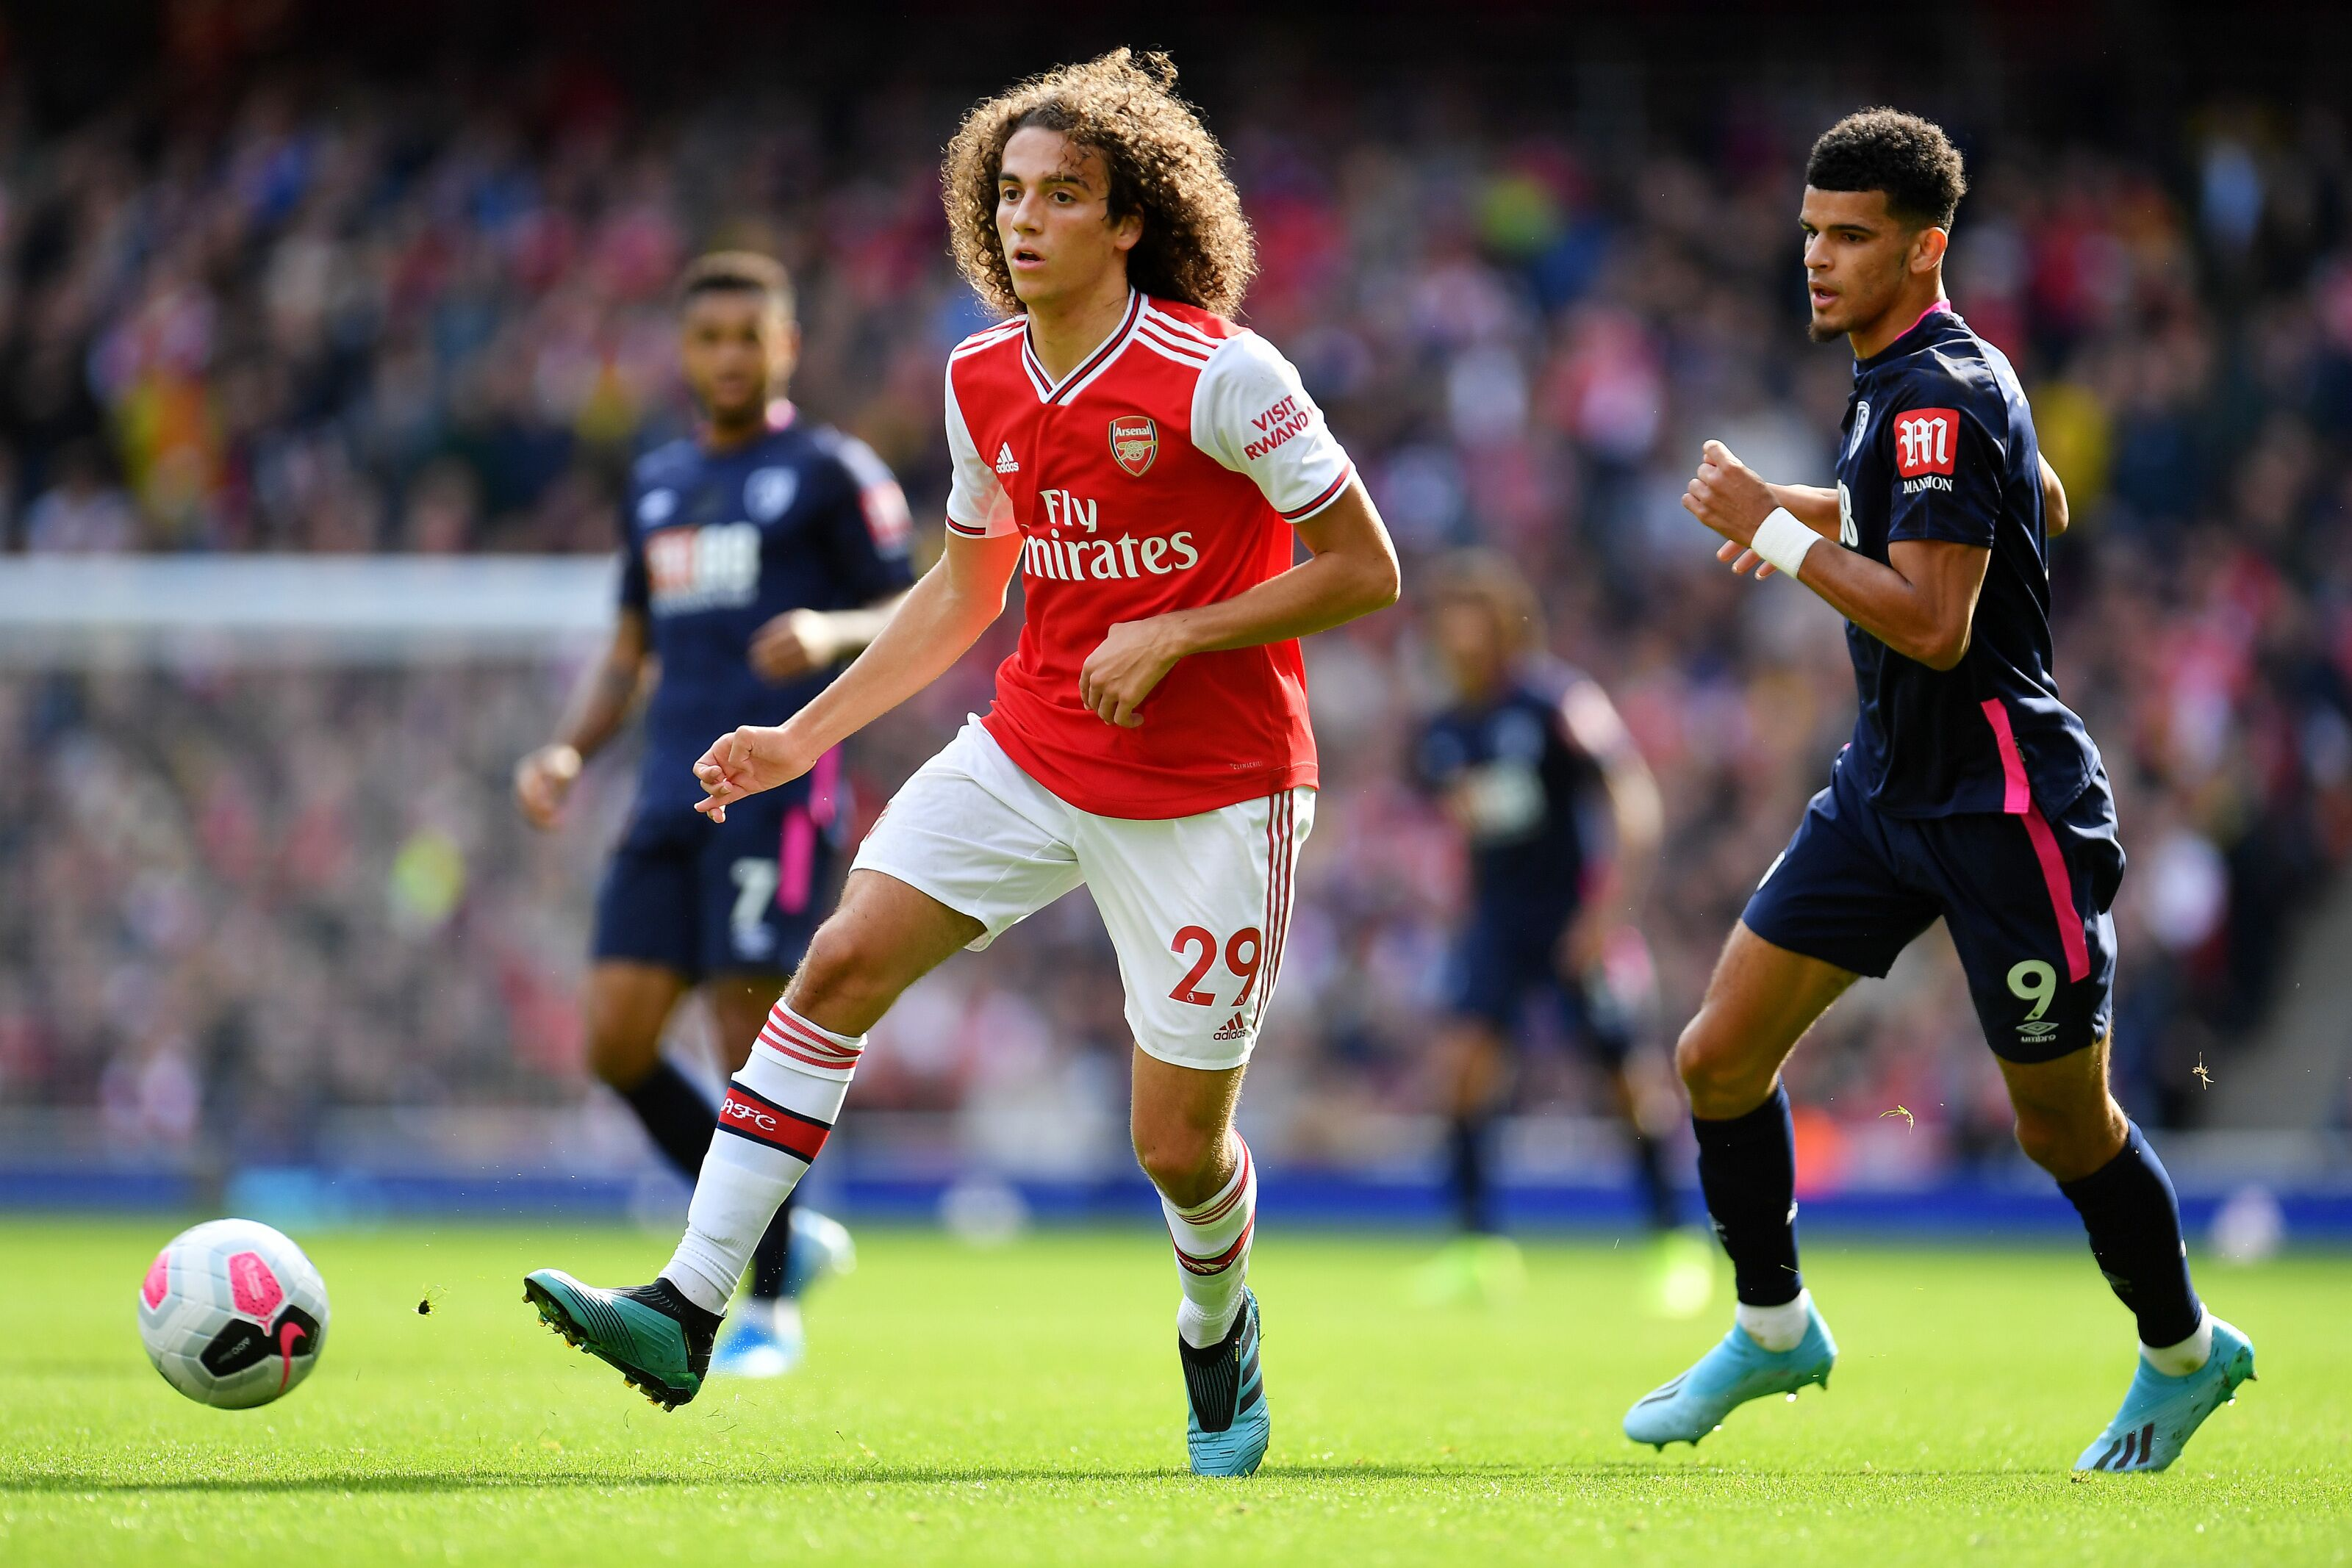 Arsenal: Matteo Guendouzi is back to being Matteo Guendouzi